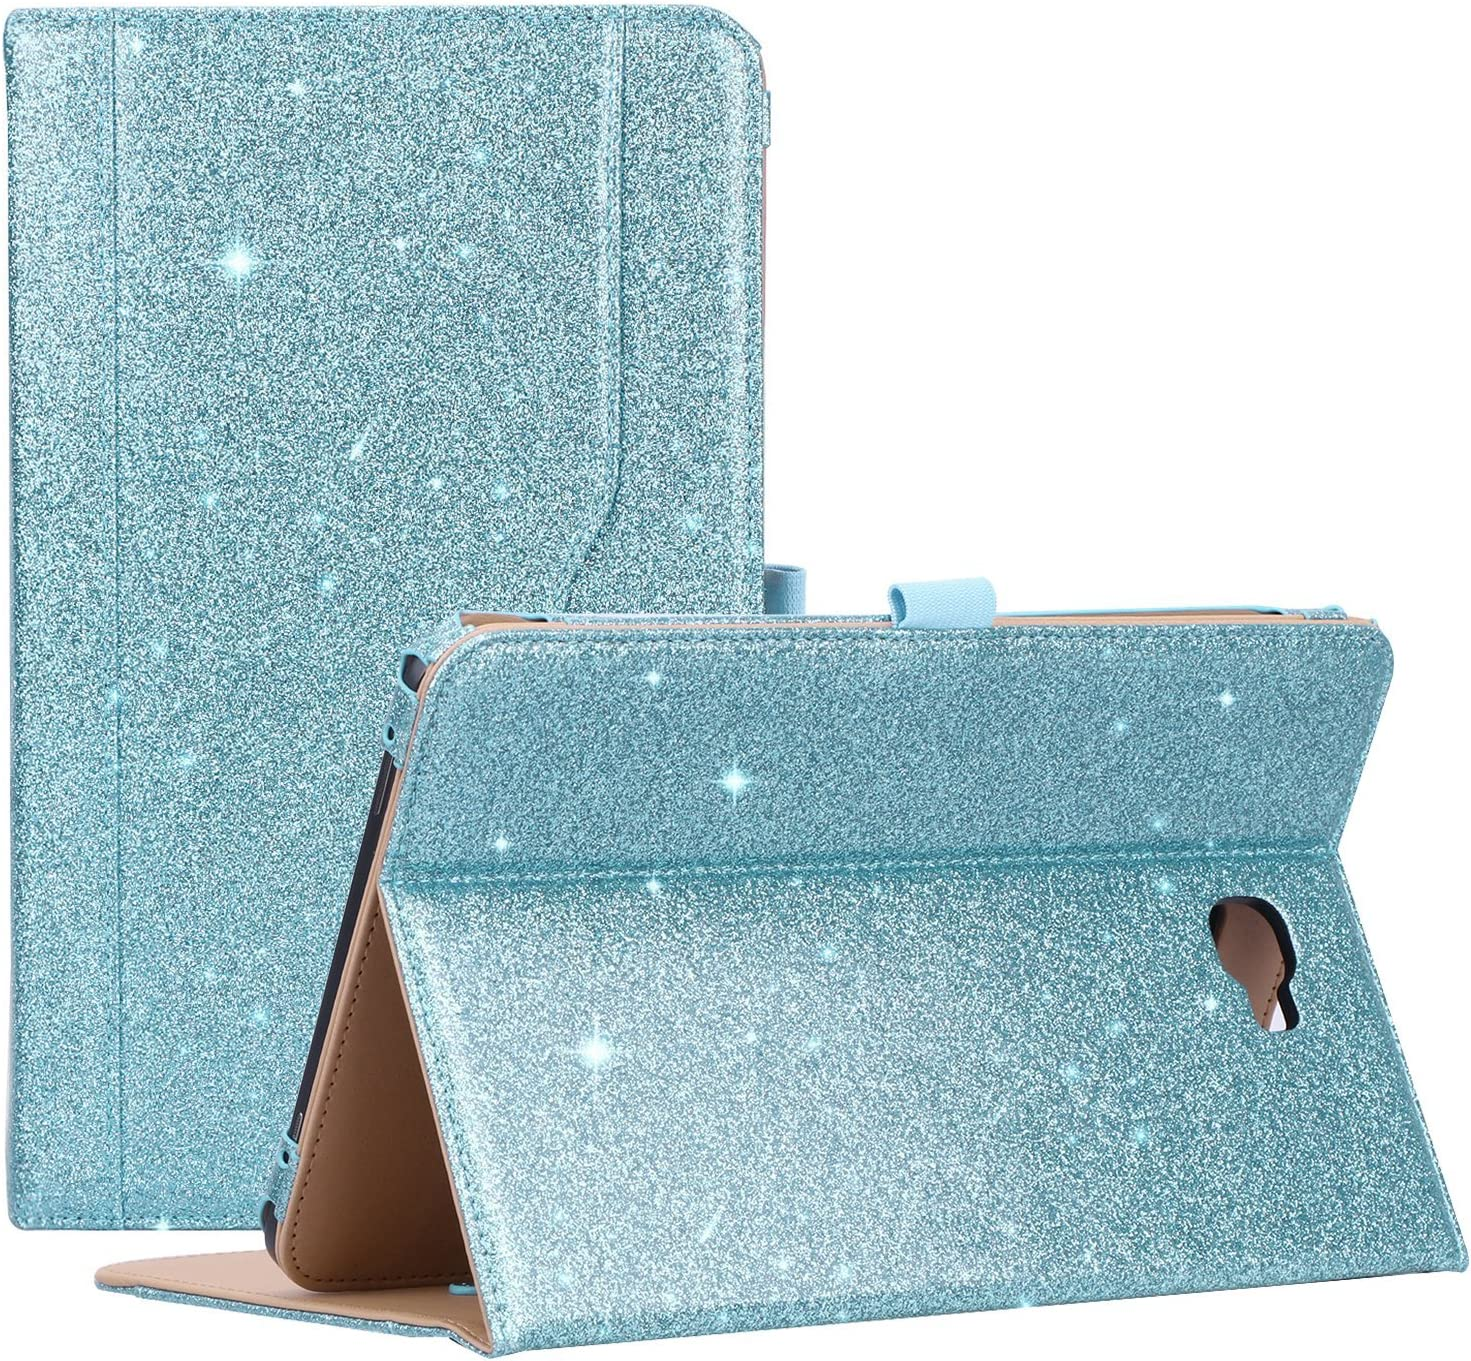 "ProCase Galaxy Tab A 10.1 Case 2016 Old Model, Stand Folio Case Cover for Galaxy Tab A 10.1"" Tablet SM-T580 T585 T587 (NO S Pen Version) with Multiple Viewing Angles, Card Pocket -Glitterblue"